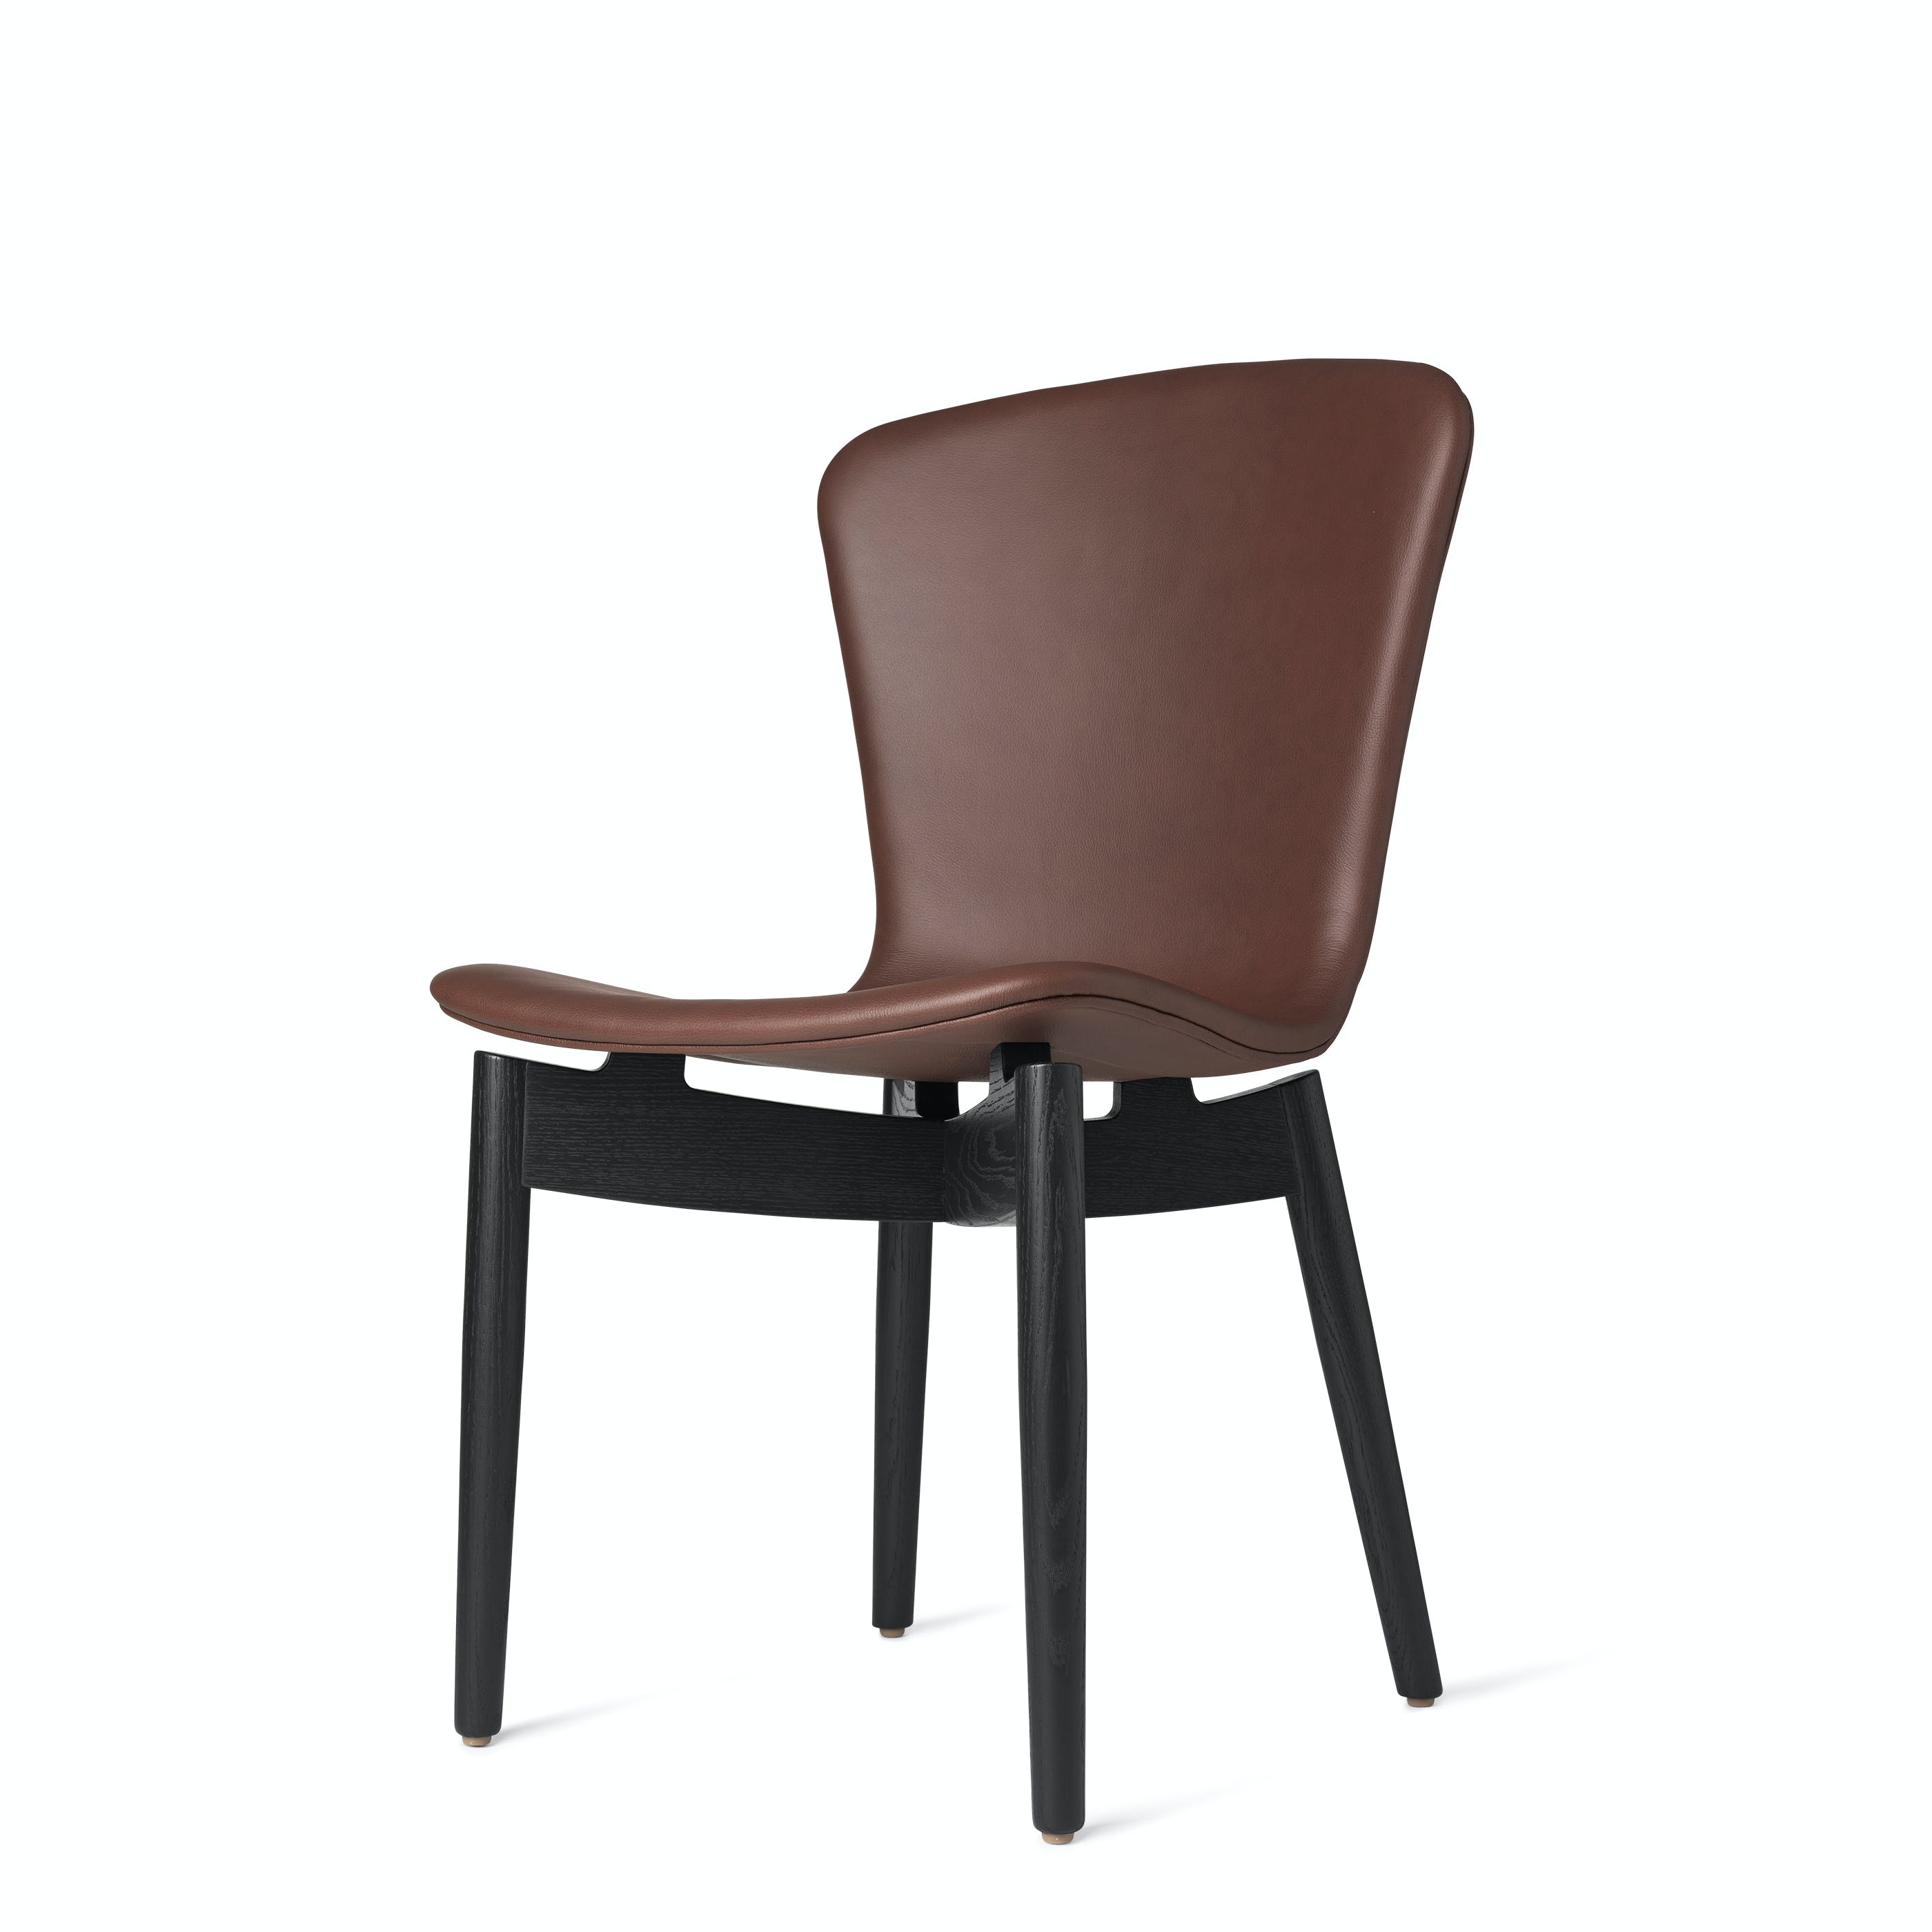 Mater Cognac Shell Dining Chair Black Legs Front Angle Haute Living